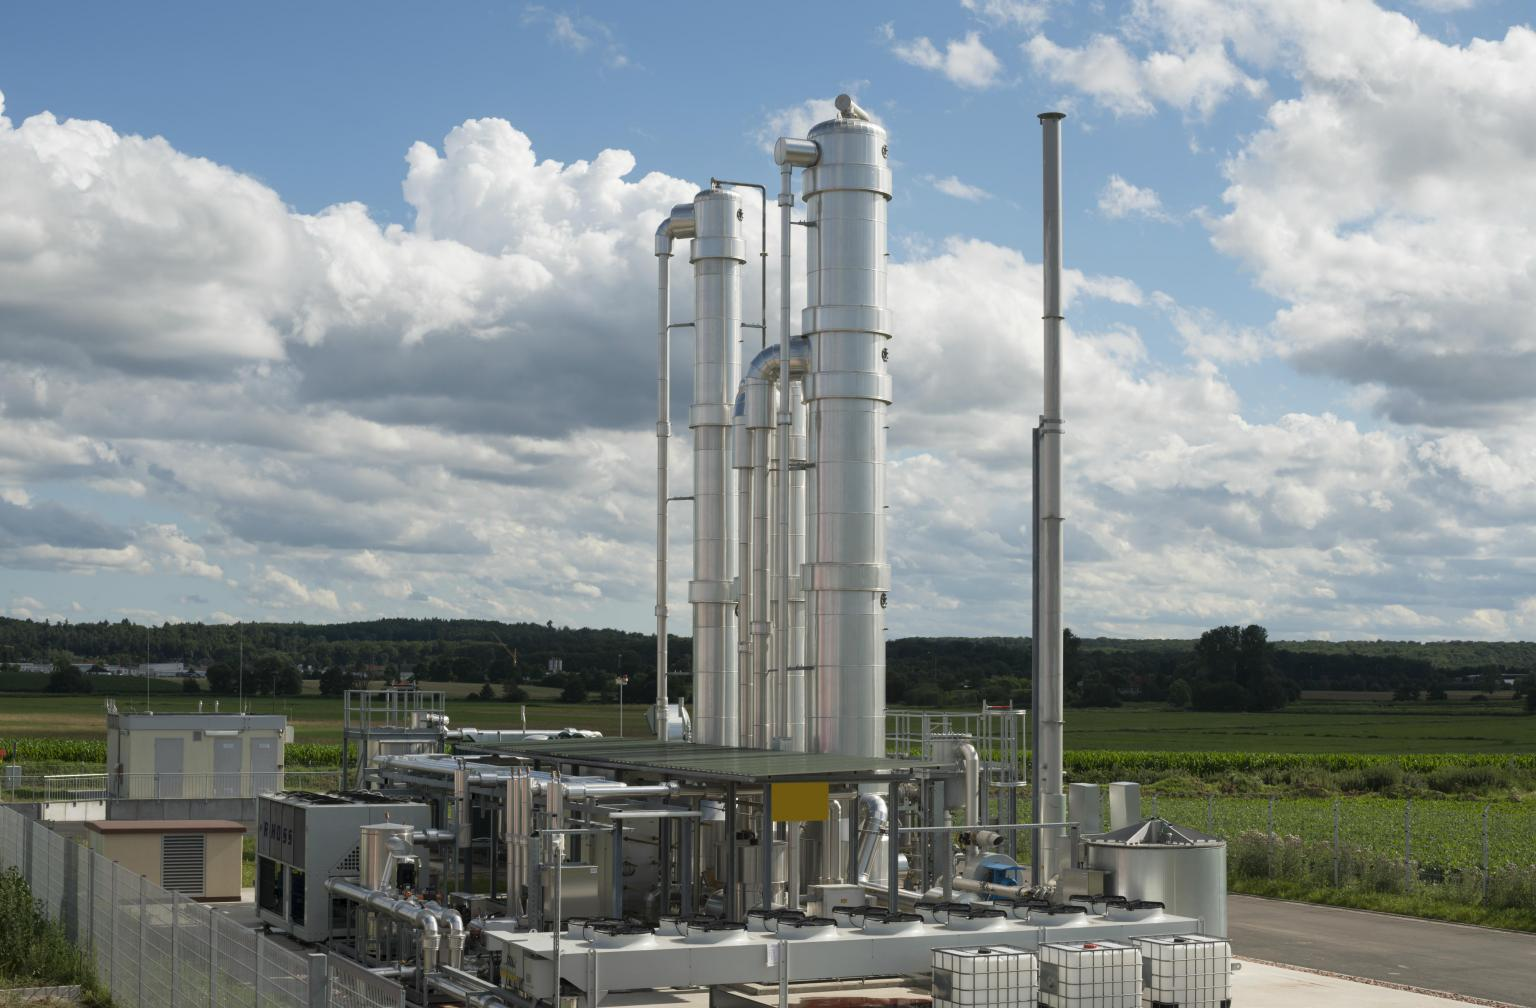 One of the largest biogas plants in France has Bredel 65 hose pumps at its core